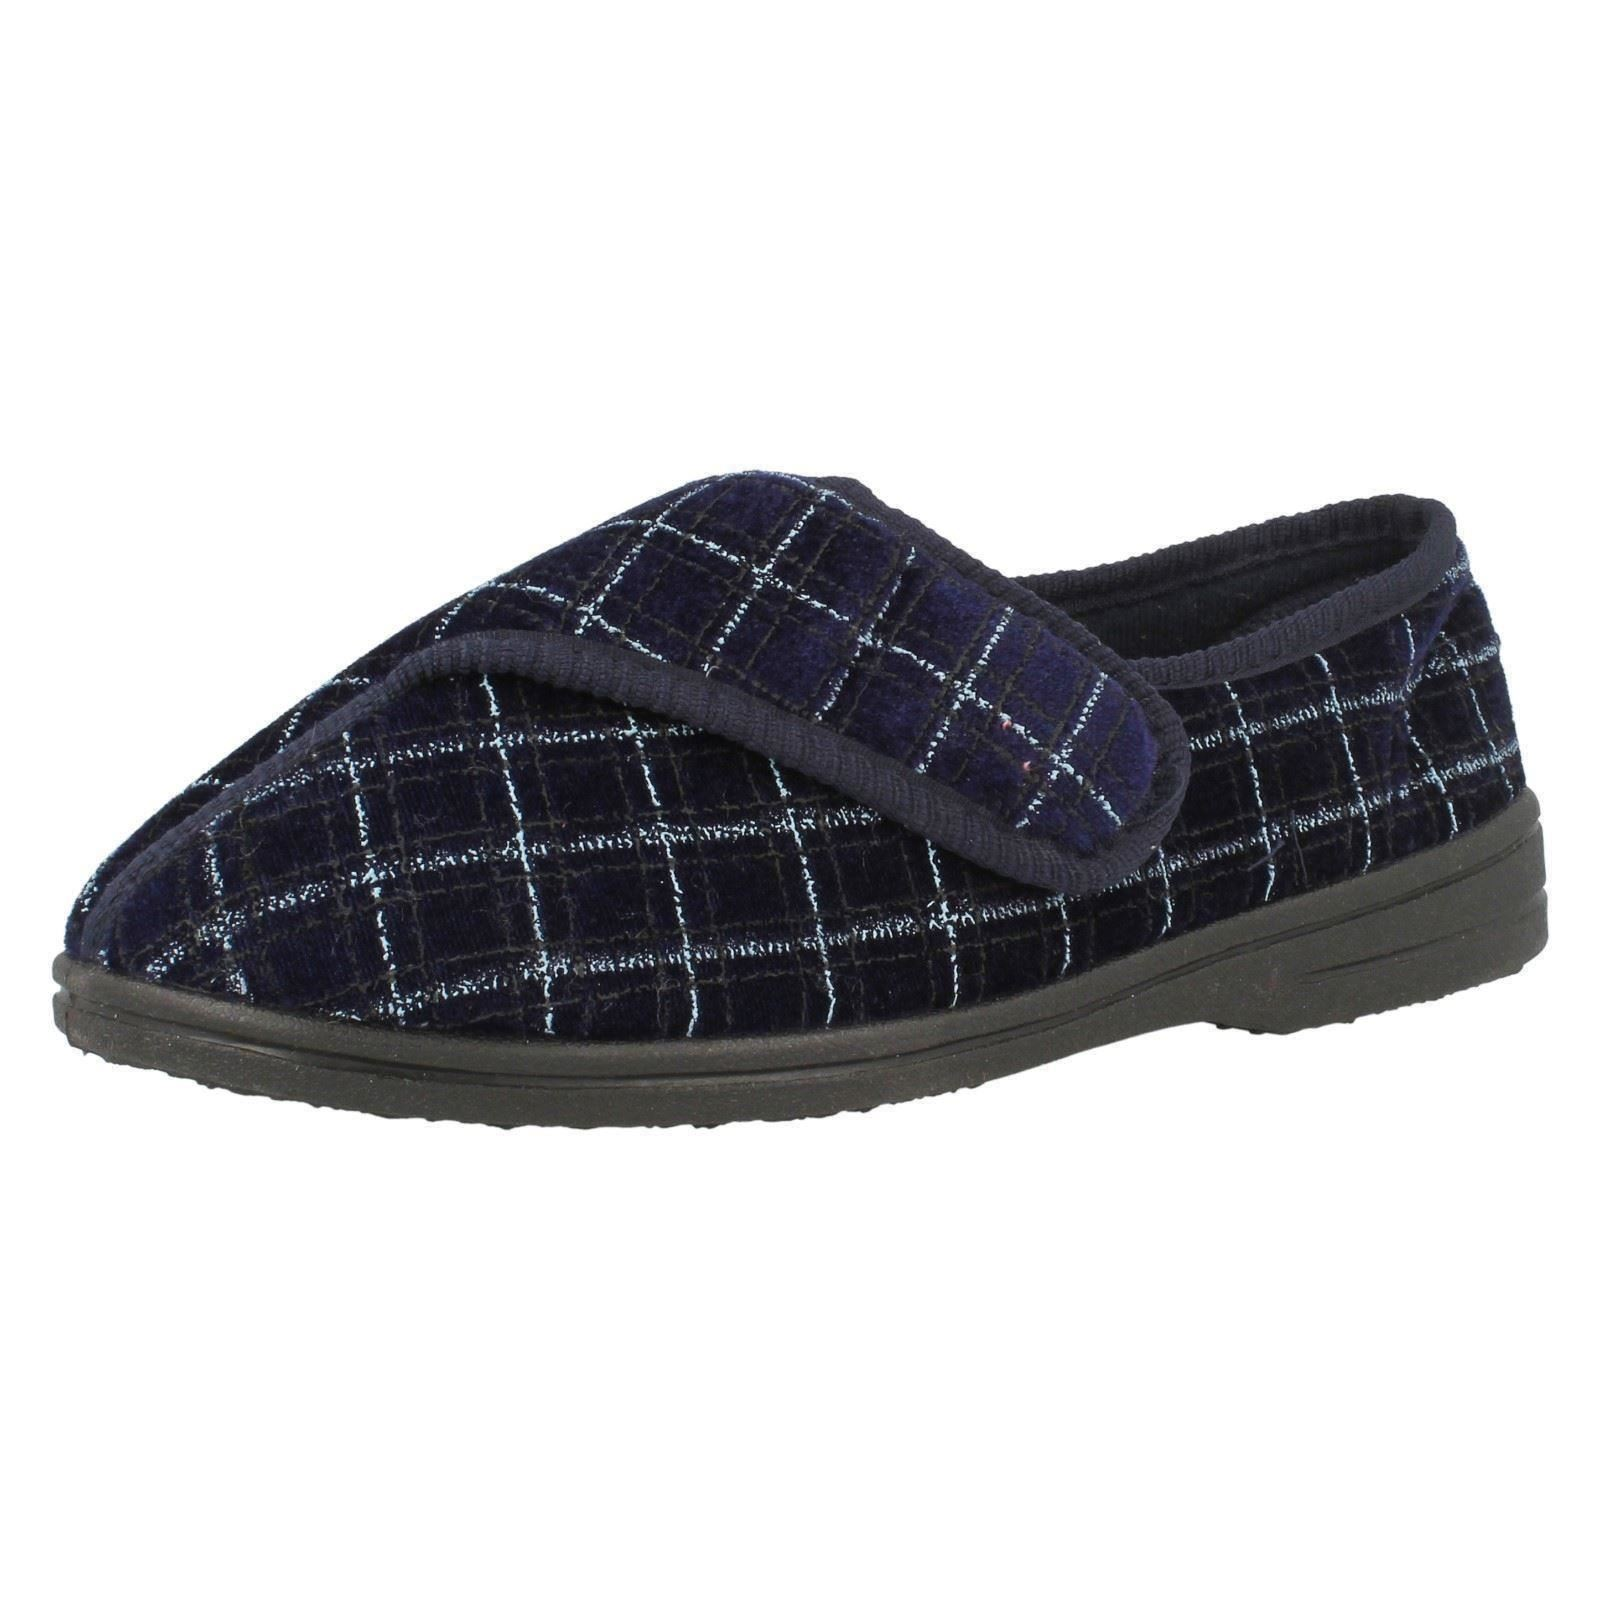 Spot On 2010-37 Mens Navy Patterned Hook/Loop Washable Slippers